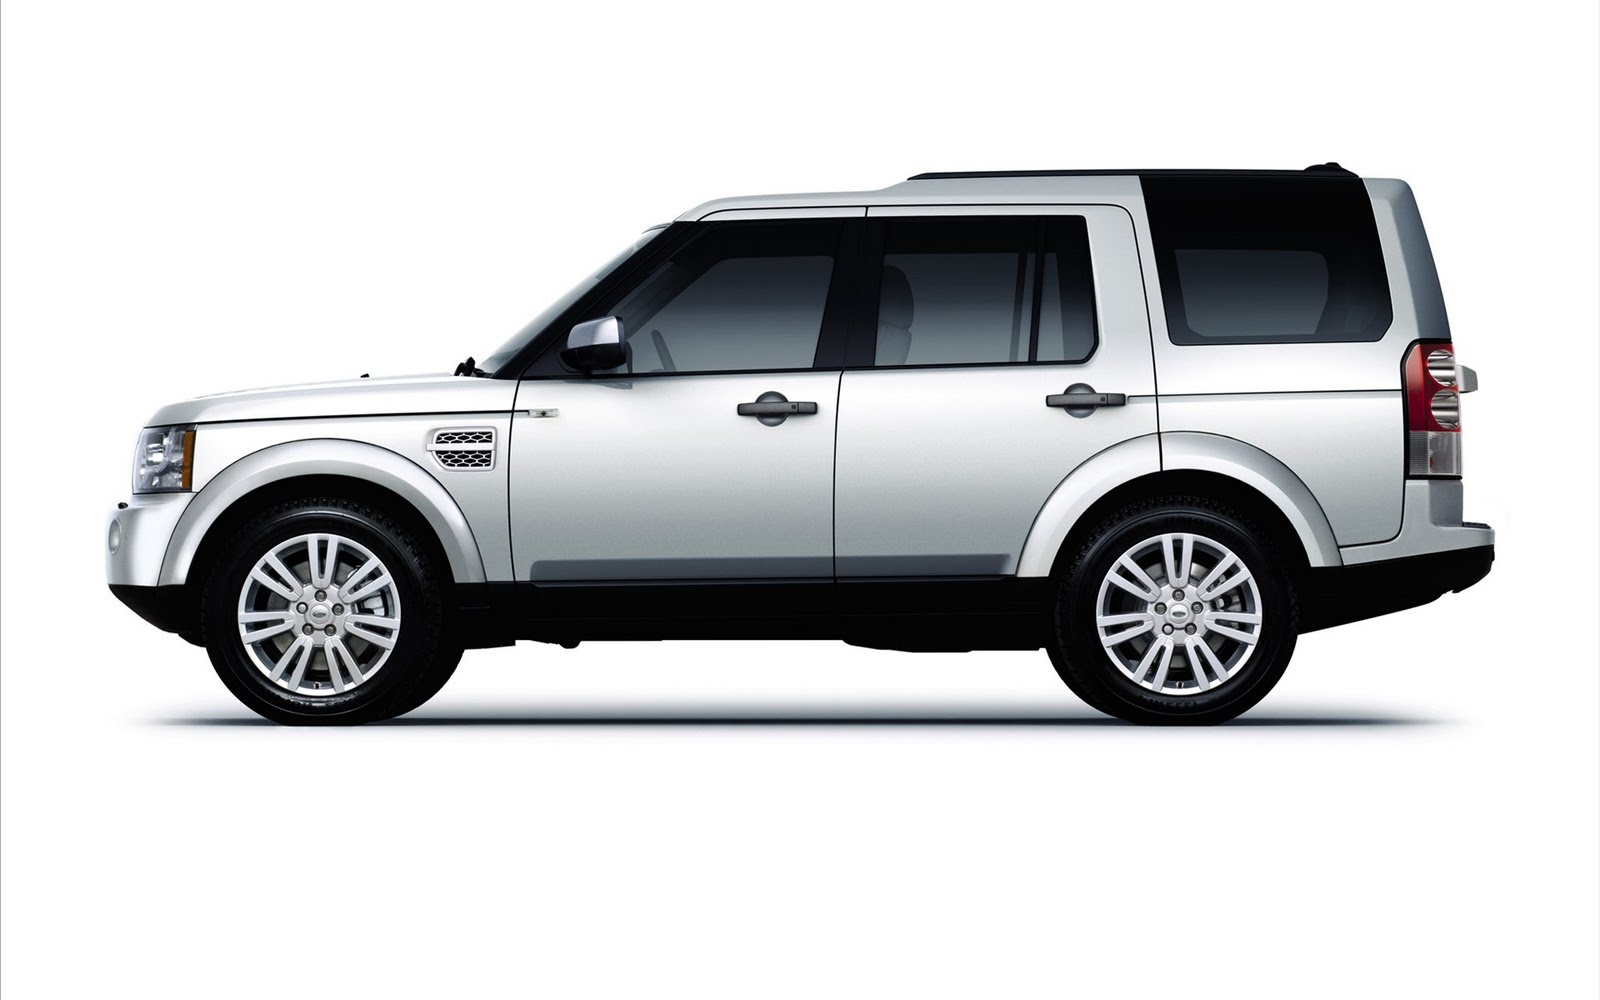 land rover discovery 4 2012 automotive todays. Black Bedroom Furniture Sets. Home Design Ideas